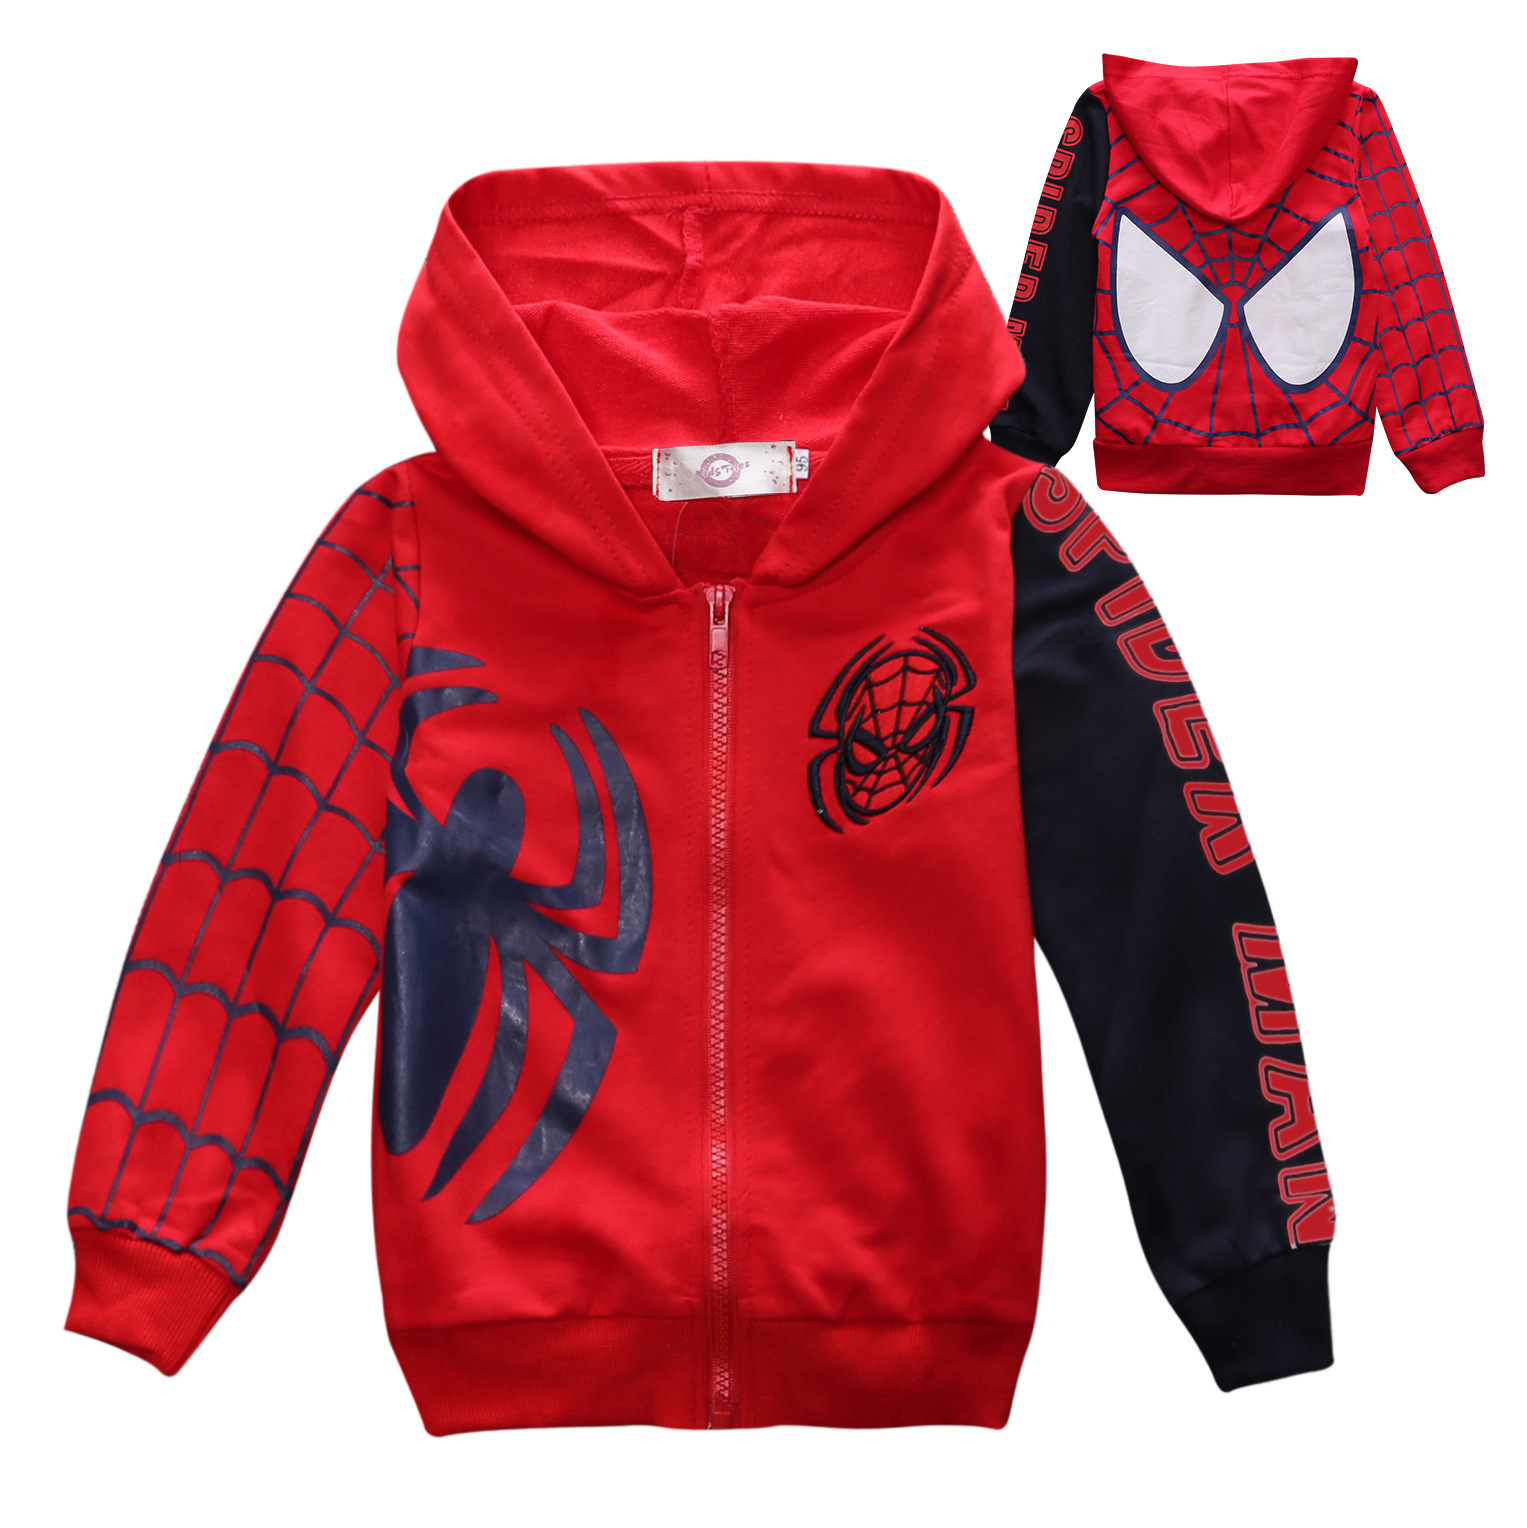 Boys Jacket Child's Coat Cartoon Spiderman Jacket Spring Autumn Kids Hooded Sweater Long Sleeve Shirt image